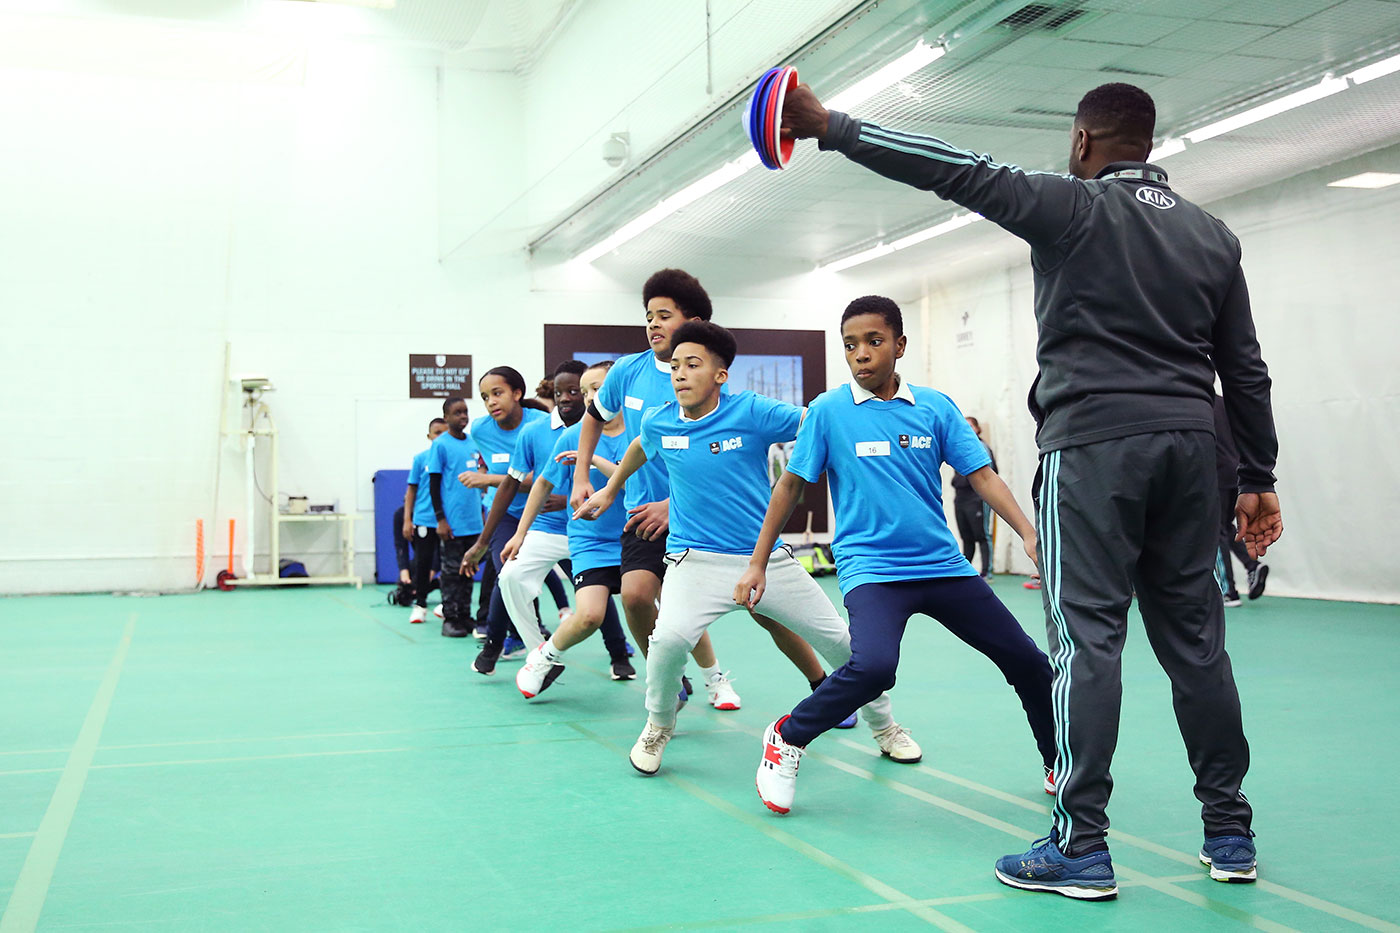 Surrey's Afro-Caribbean Engagement programme, led by Rainford-Brent, could be a way to build the game in a community long alienated from English cricket